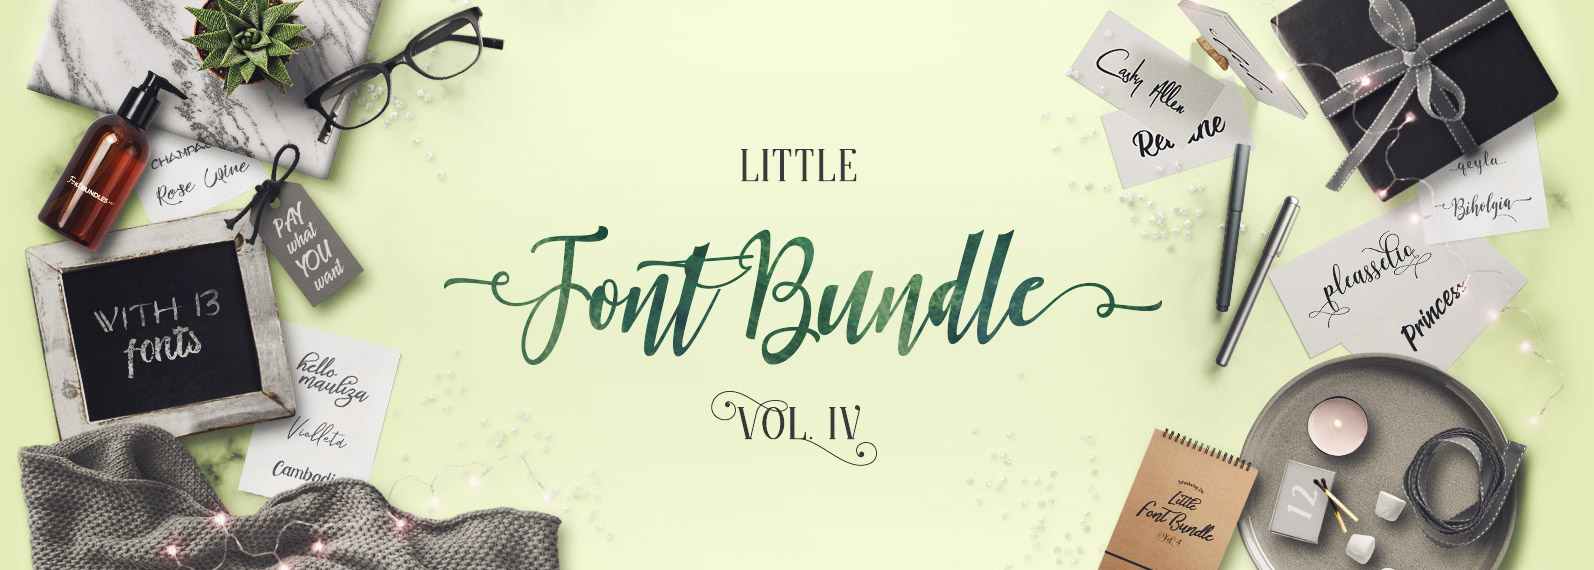 The Little Font Bundle Vol IV Cover